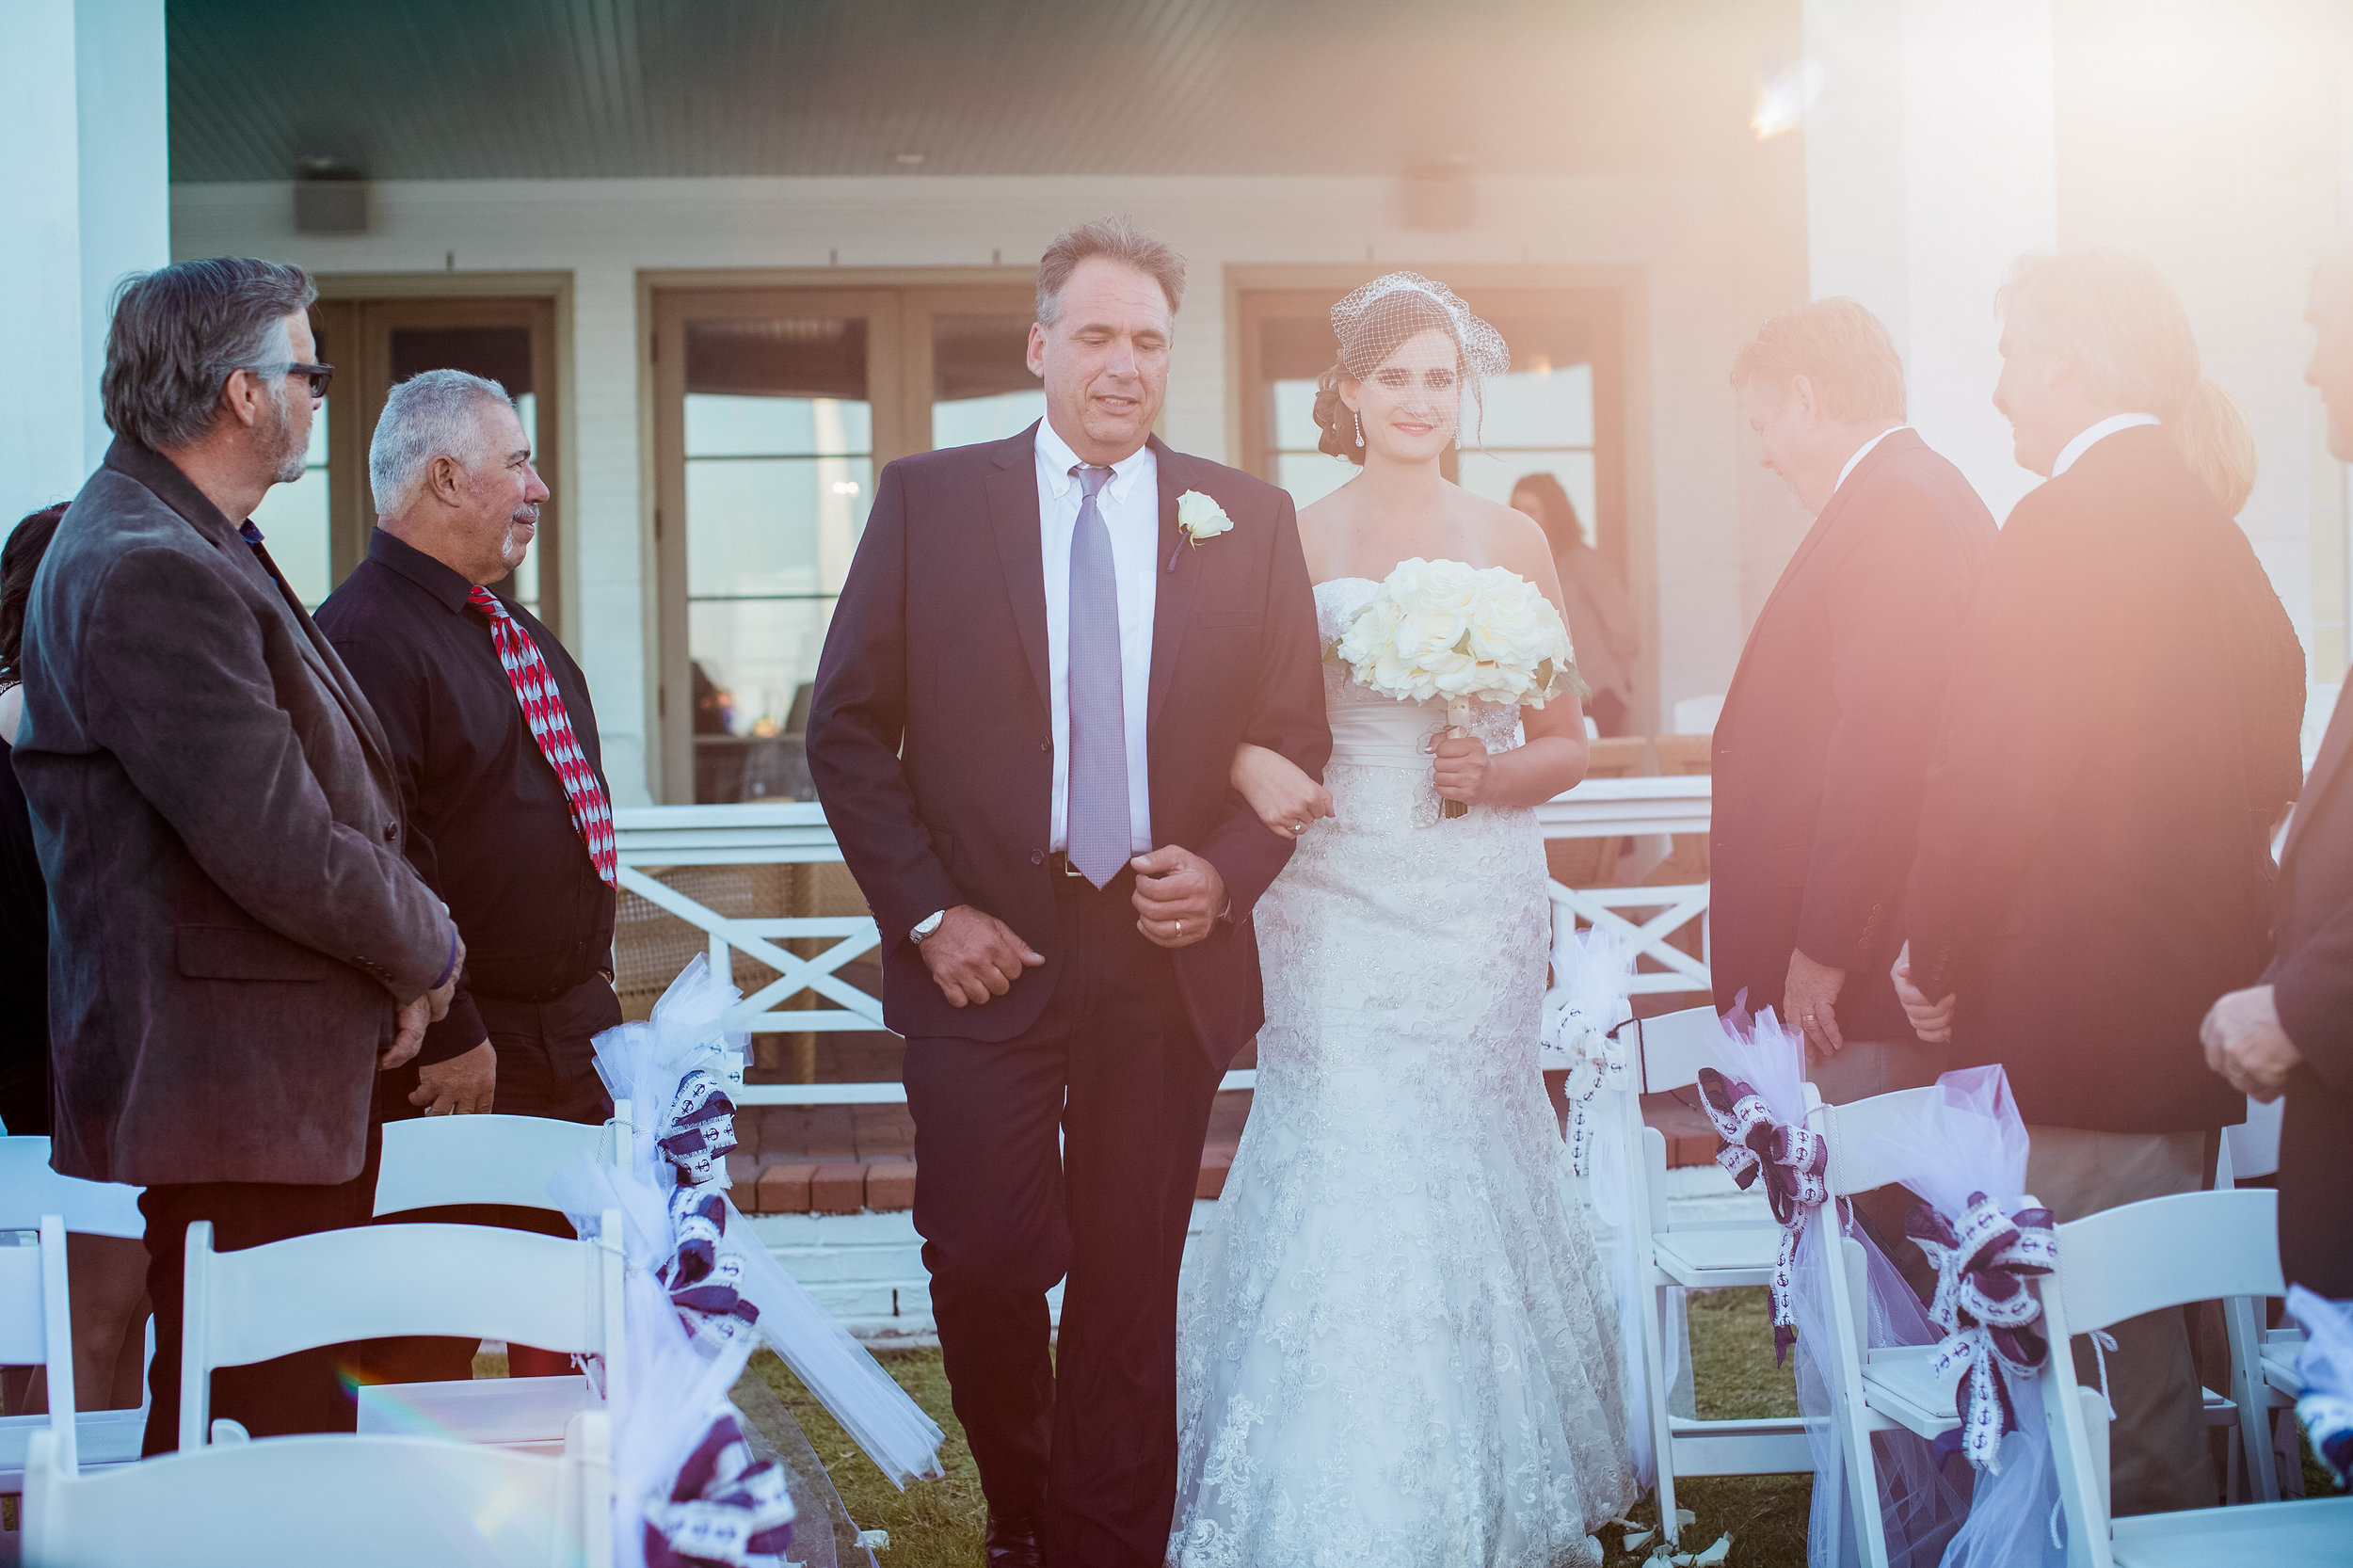 Plan Our Day Houston | Houston Wedding Coordinators | Kemah, TX Wedding at Texas Corinithian Yacht Club